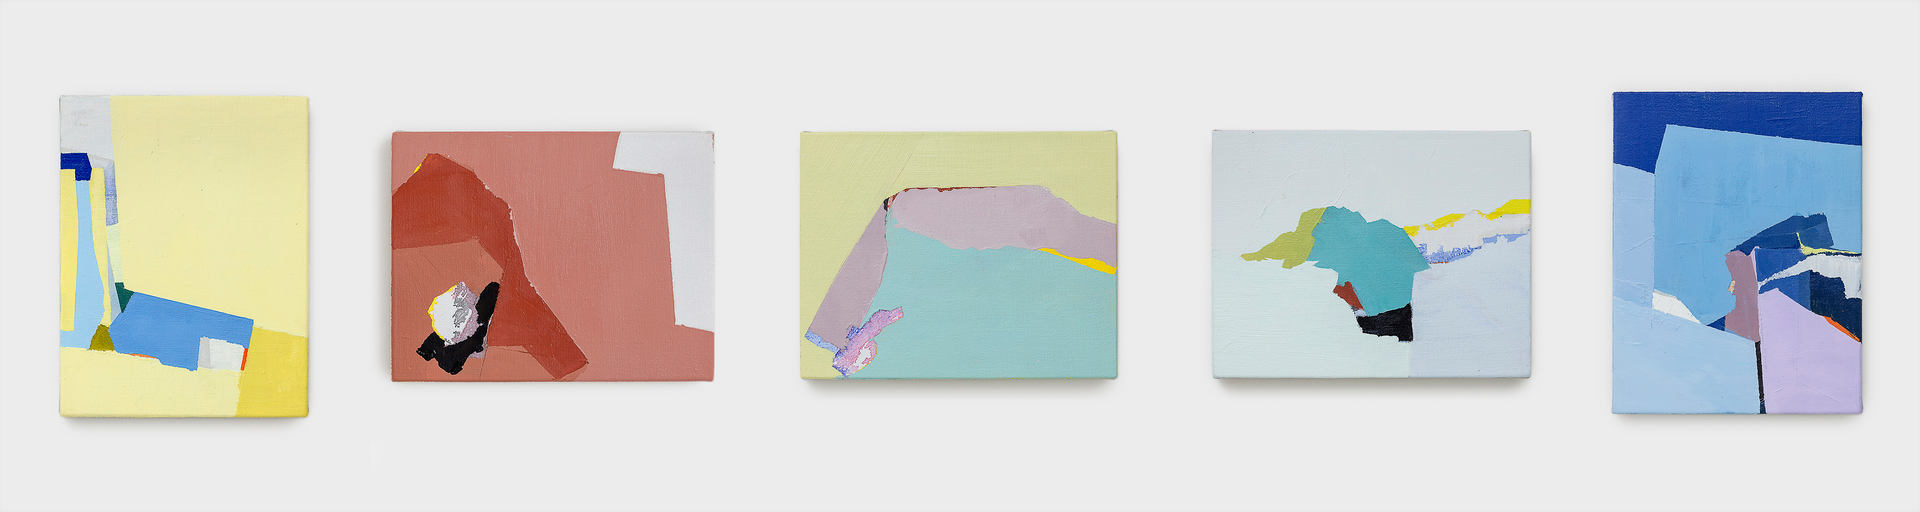 Sueli Espicalquis sem titulo, 2018, óleo e cera sobre linho, 2 de 33 x 23 cm e 3 de 23 x 33 cm untitled, 2018, oil and wax on linen, 2 of 33 x 23 cm and 3 of 23 x 33 cm